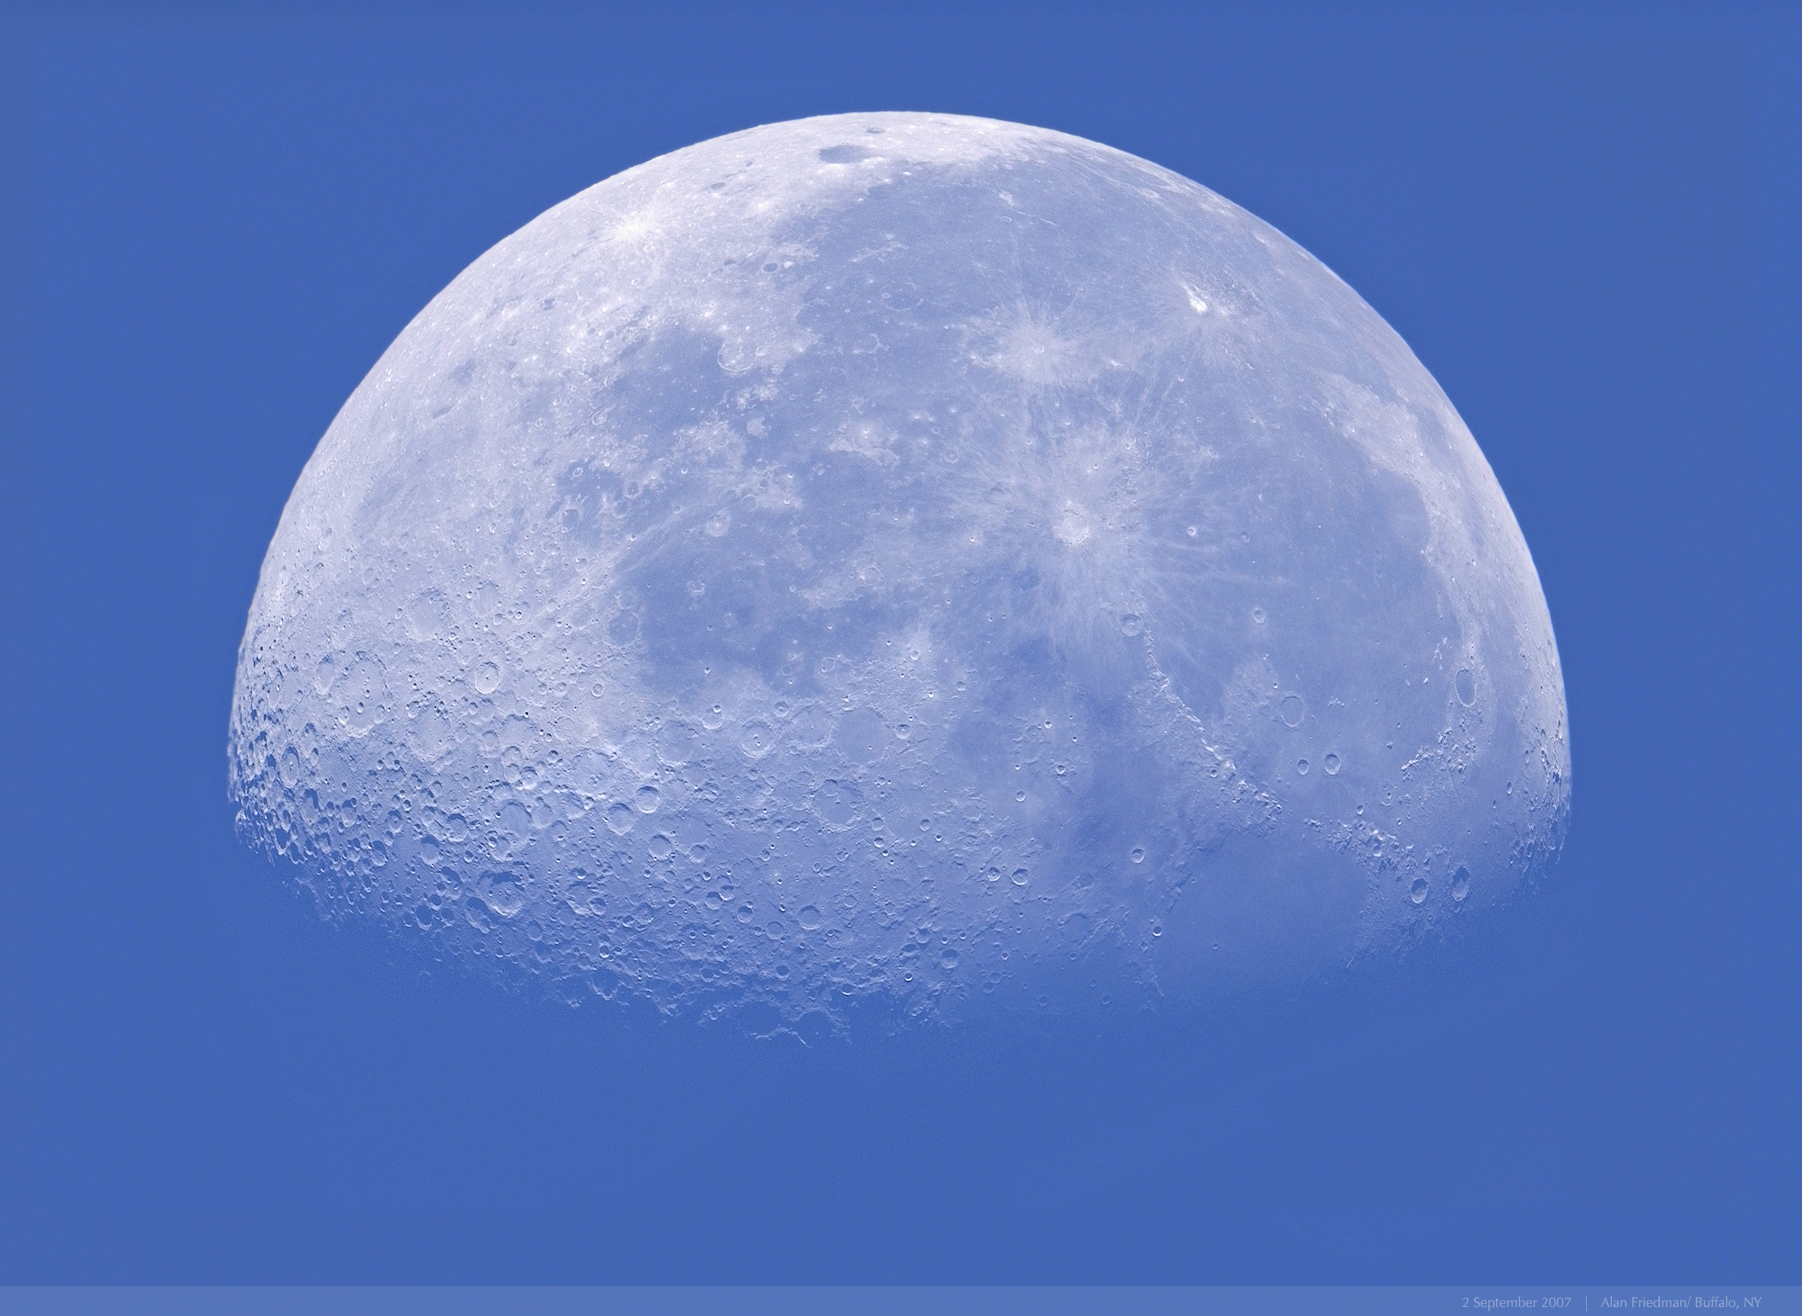 An image of the waning gibbous moon in the morning sky, captured while